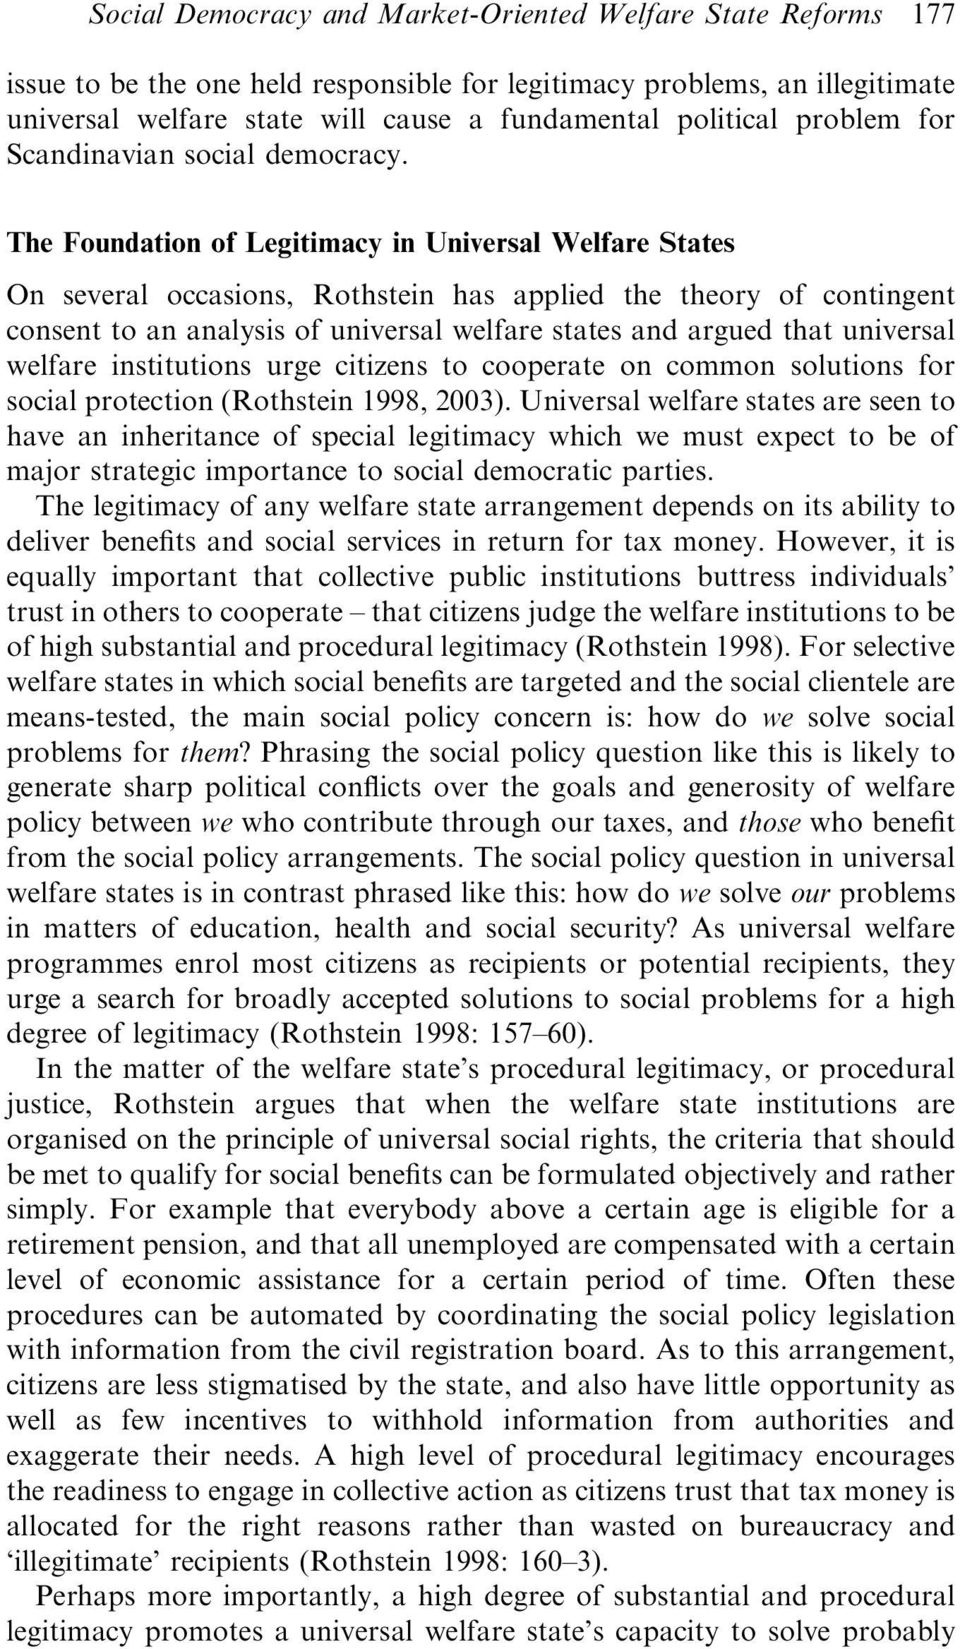 The Foundation of Legitimacy in Universal Welfare States On several occasions, Rothstein has applied the theory of contingent consent to an analysis of universal welfare states and argued that